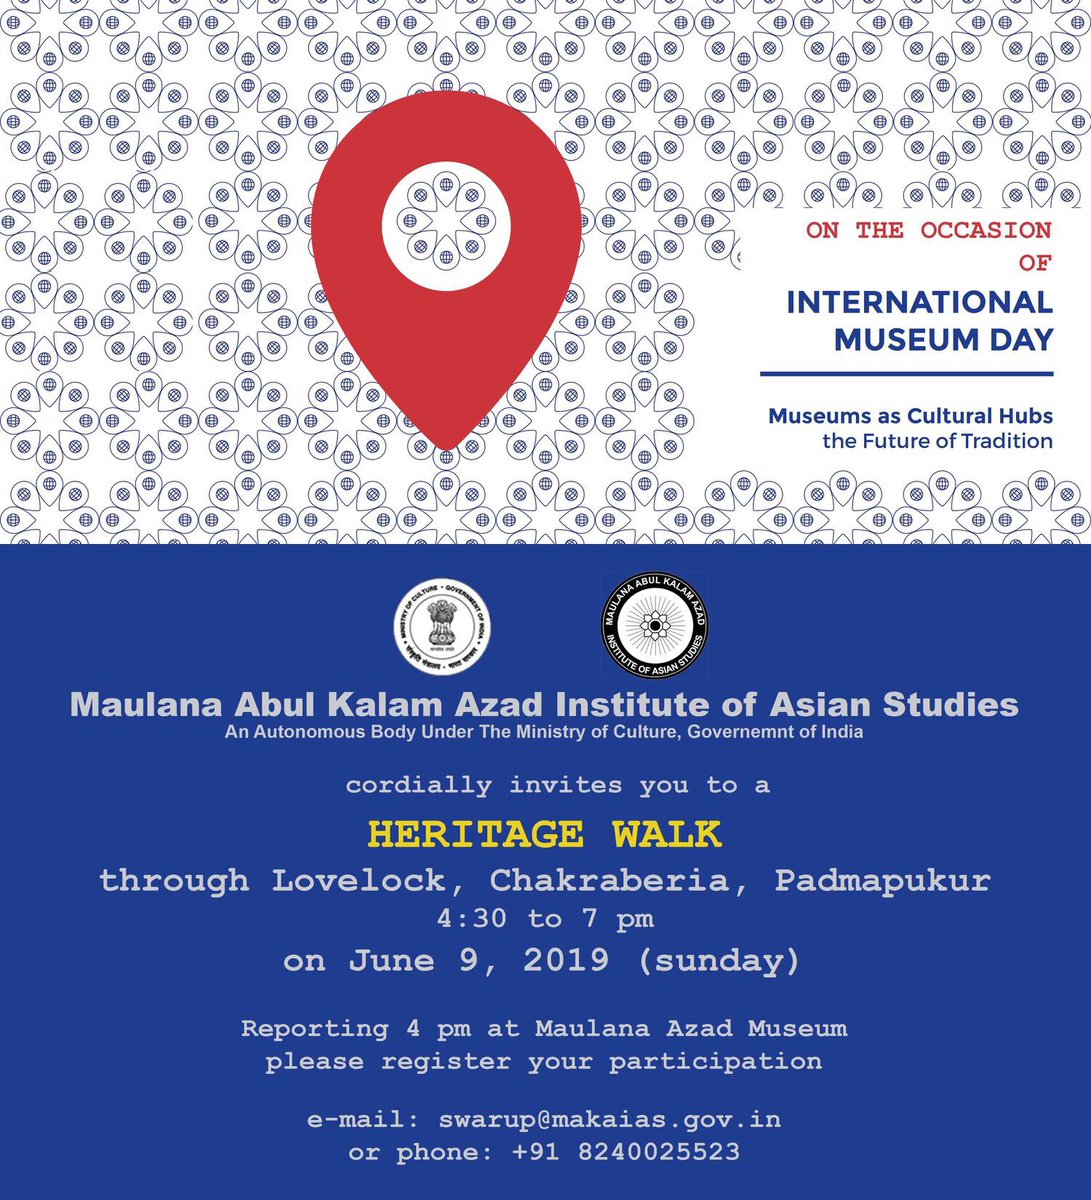 Excited to support this initiative by #MaulanaAzad #Museum!  Please register at the link below: http://forms.gle/VaSk6HmPQfxLRy… Meeting: Maulana Azad Museum (http://goo.gl/maps/qKo6JiRSS…)  #internationalmuseumday #explorecalcutta #experiencekolkata #calcutta #heritagewalk #localhistory